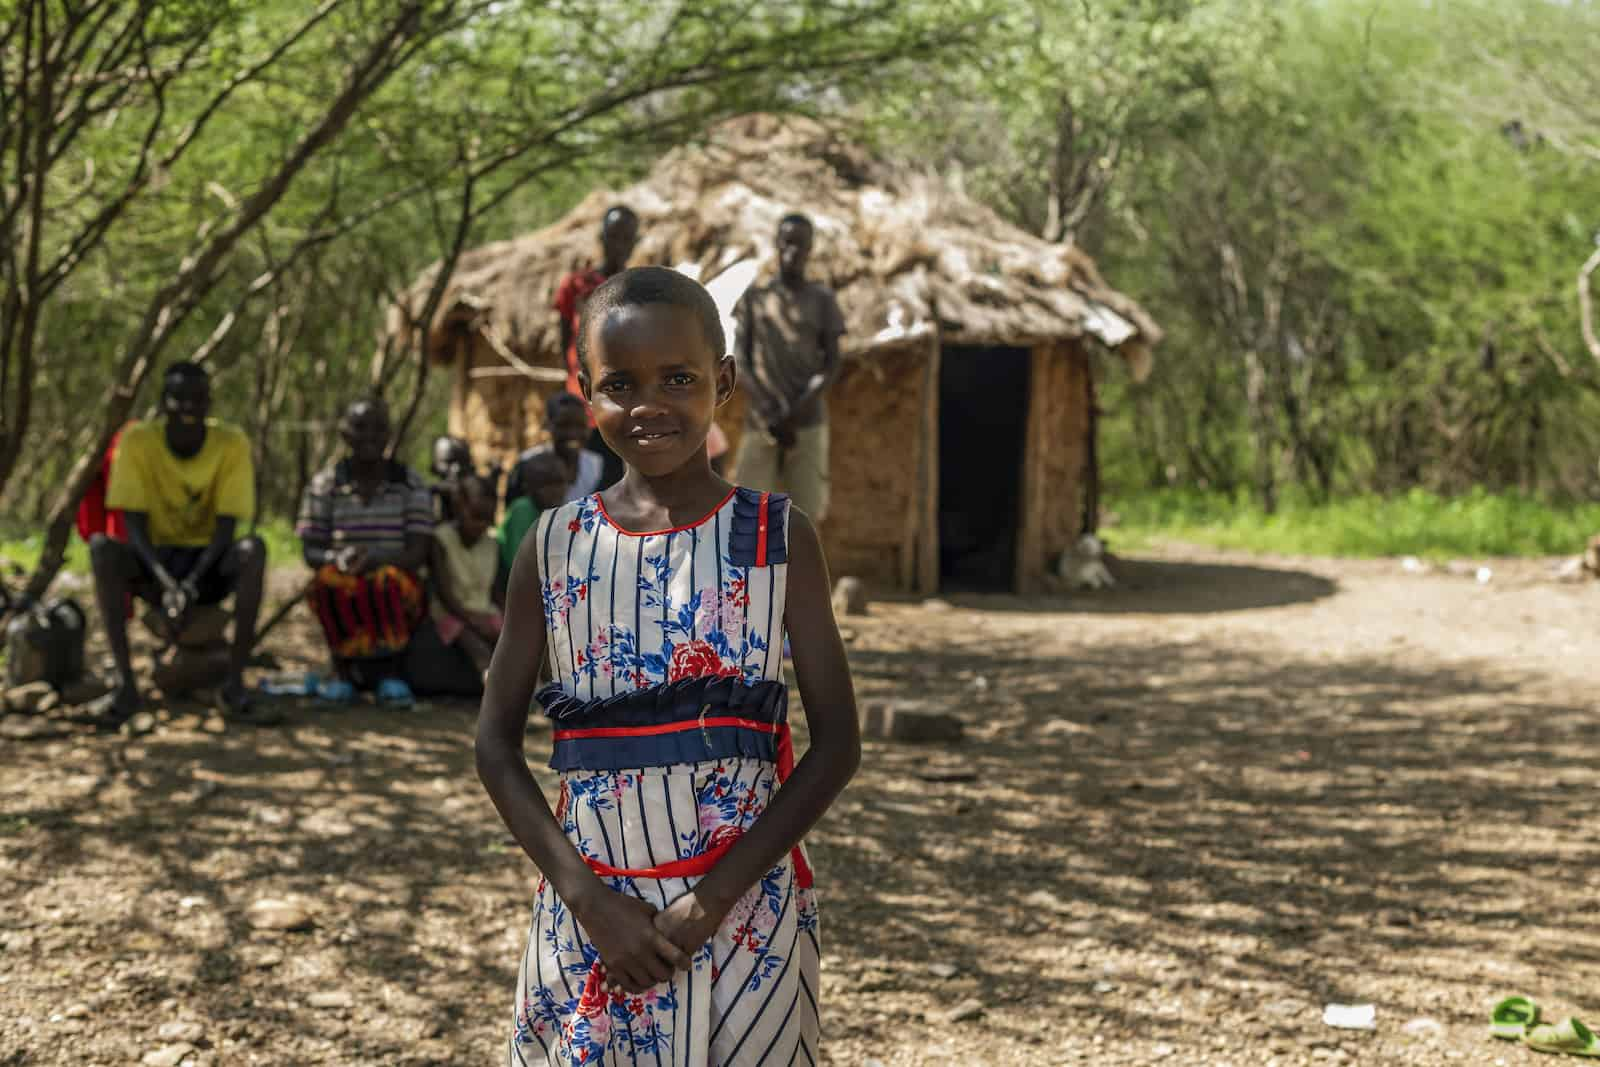 A young girl stands in front of a grass thatched hut with her family sitting behind her.